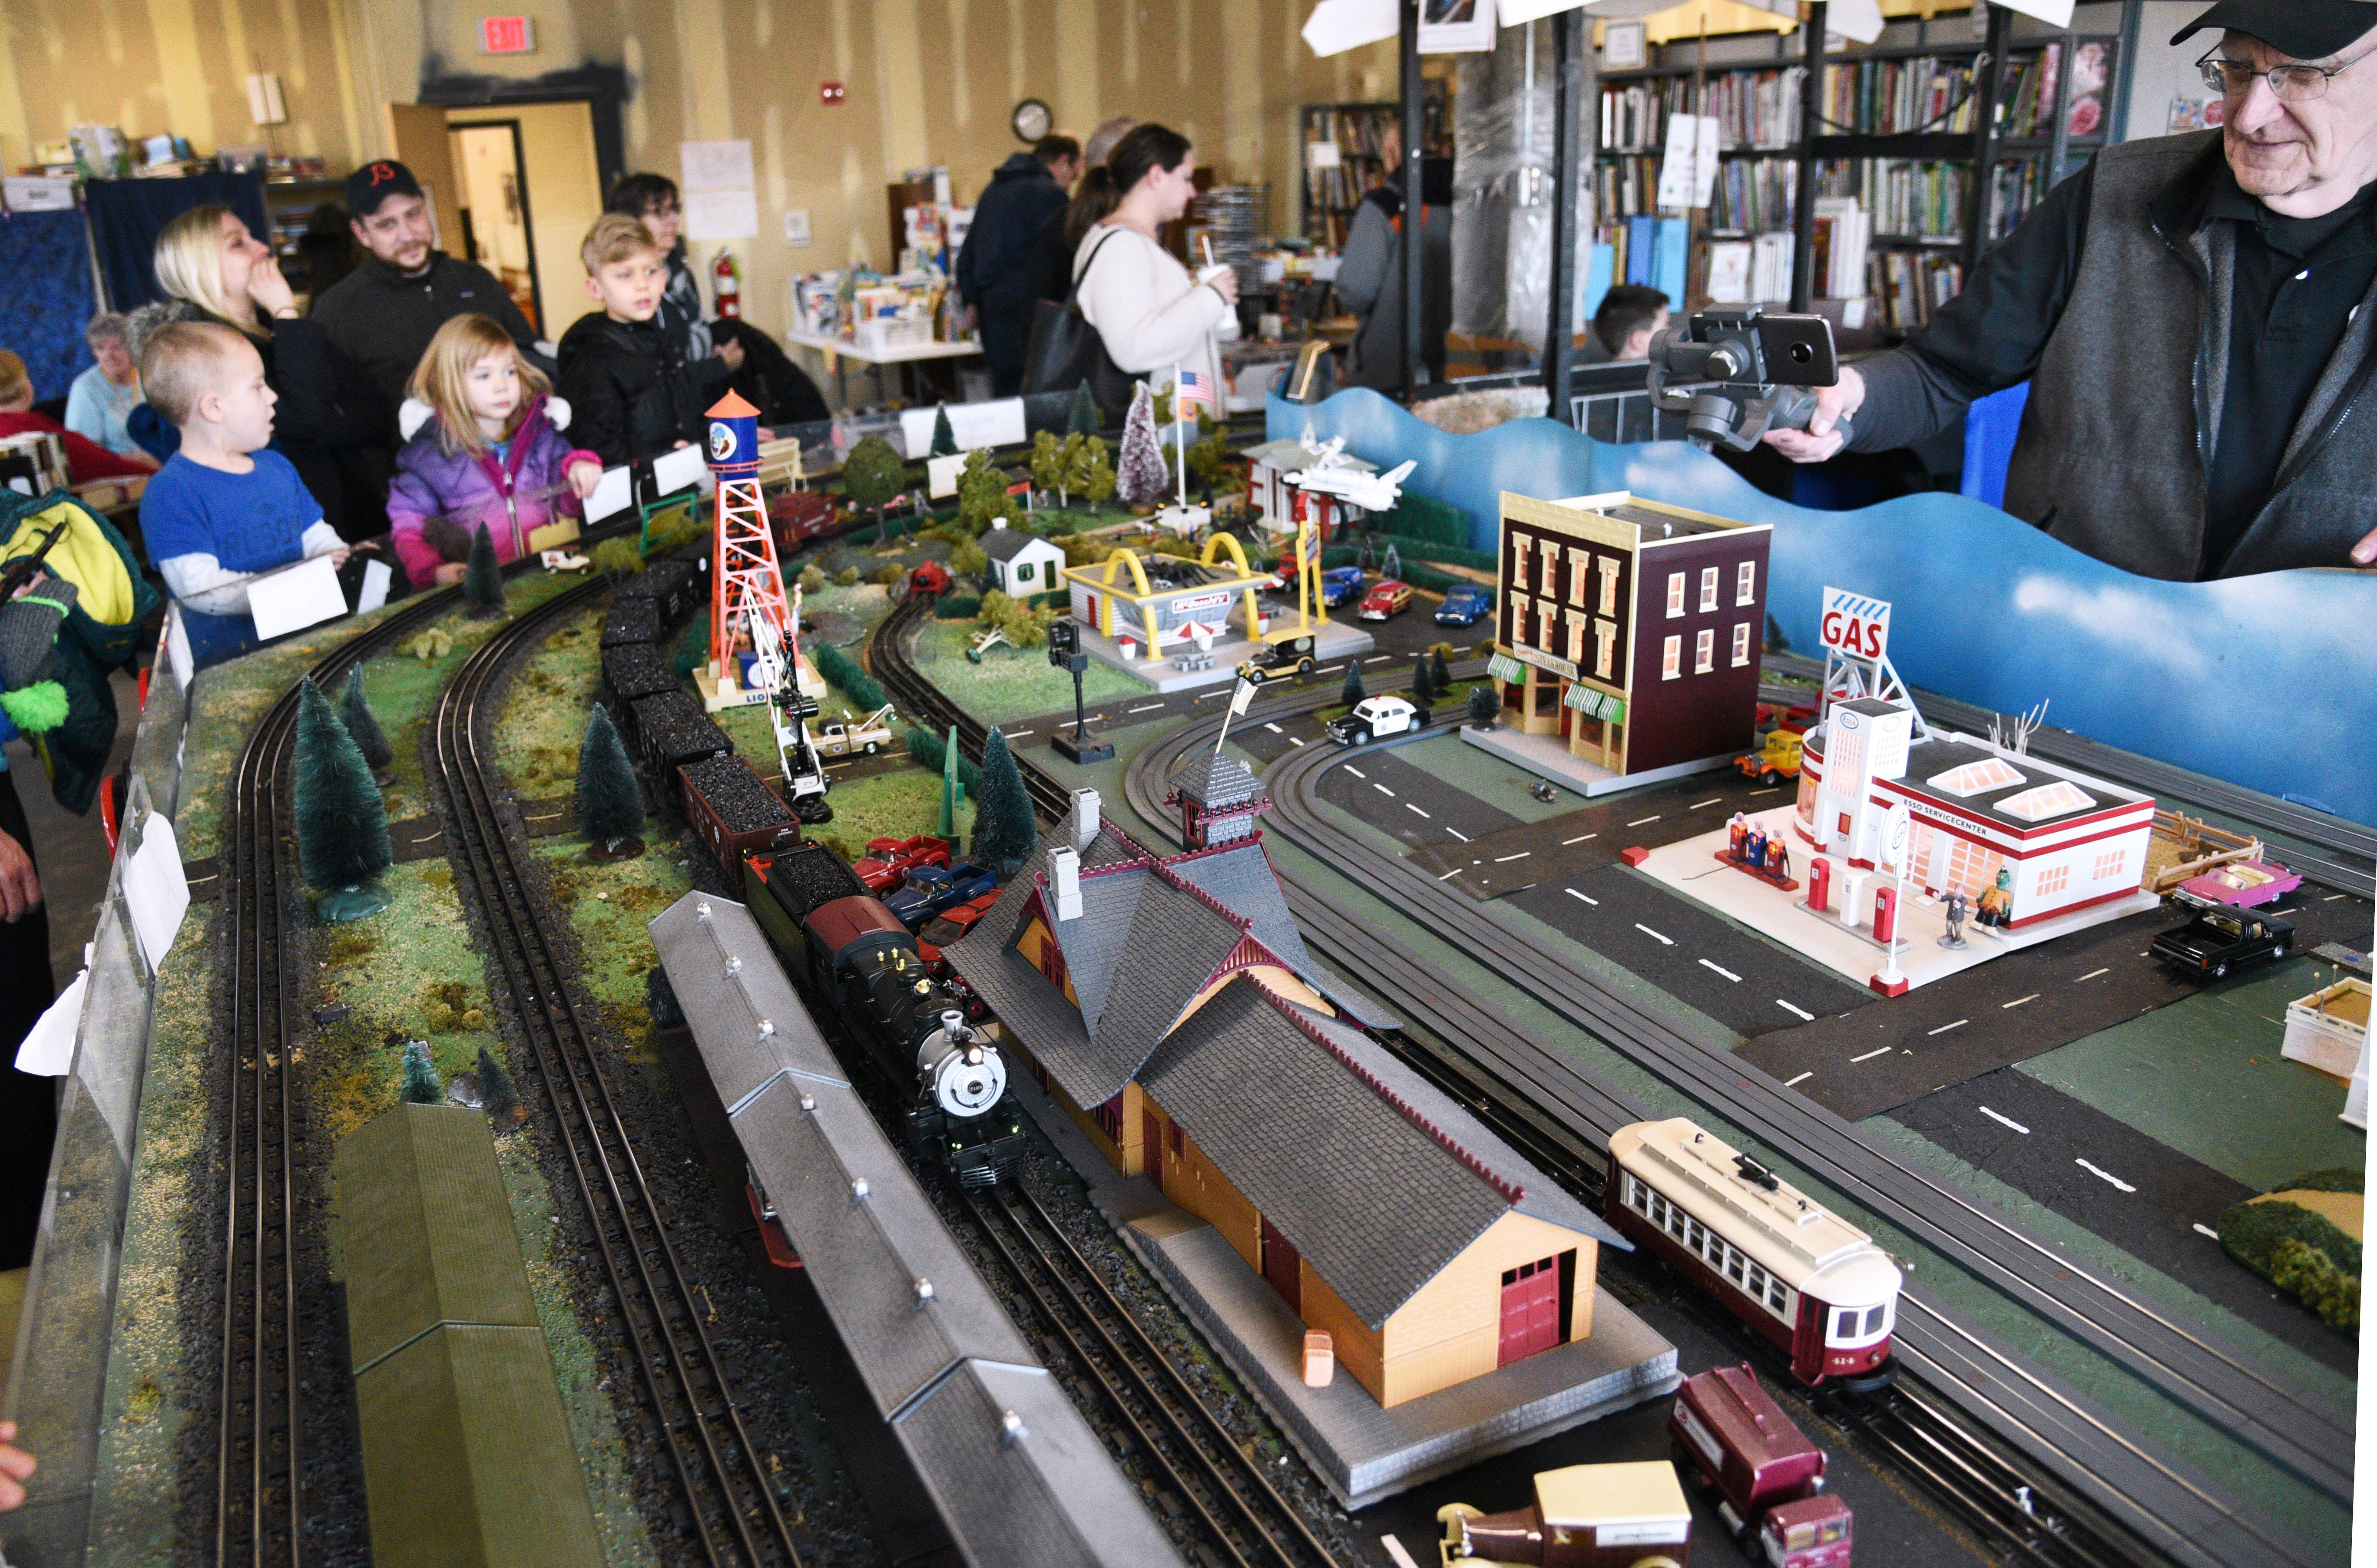 The North Central 'O' Gaugers Model Railroad Club held its monthly train run at the Fremont Public Library in Mundelein on Saturday.